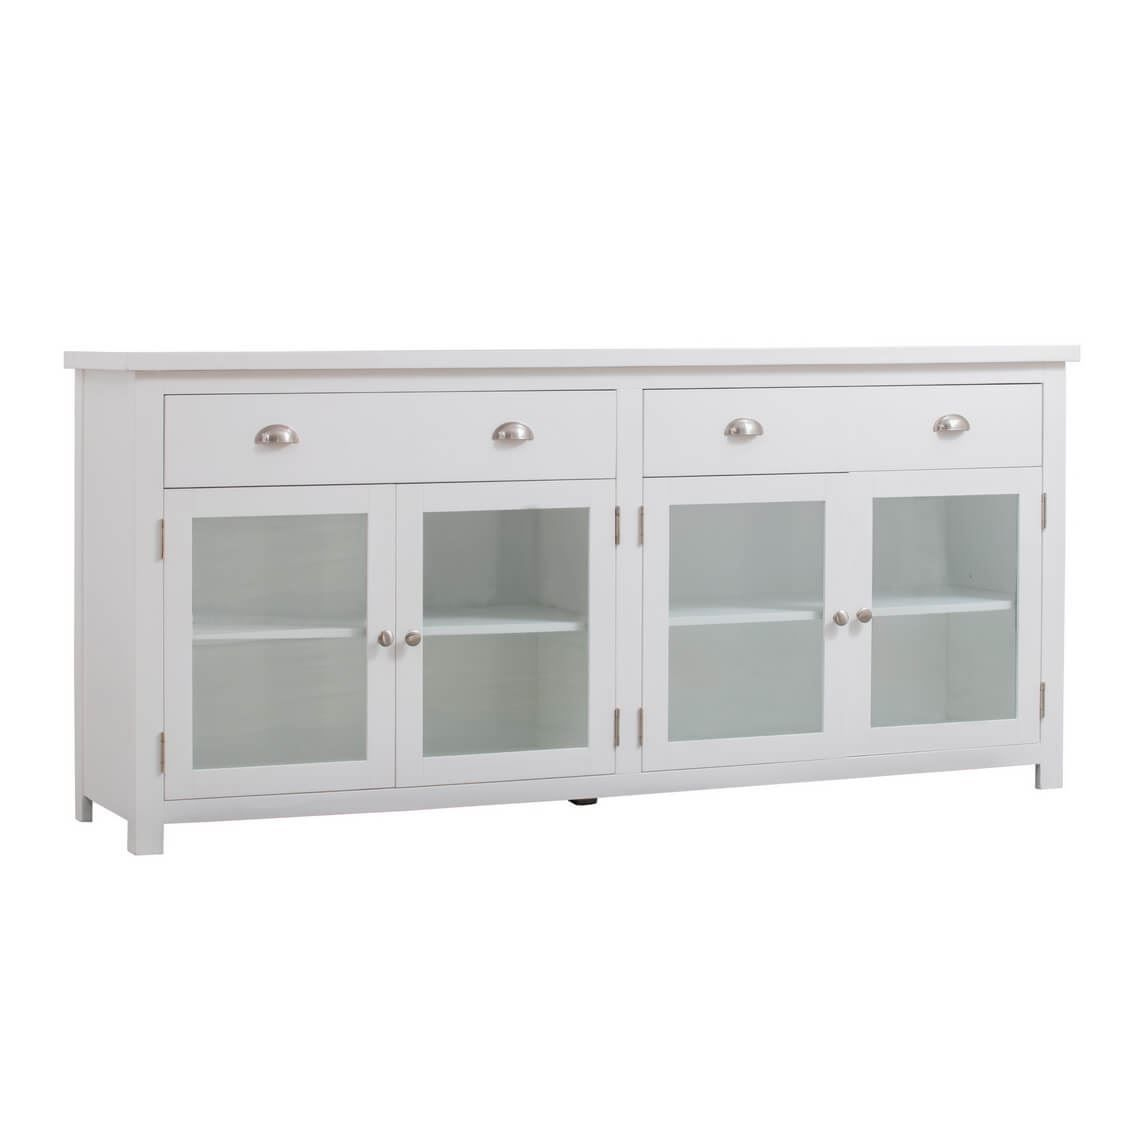 East Port Buffet, Crisp White | Products In 2019 | Buffet Within South Miami Sideboards (View 10 of 30)